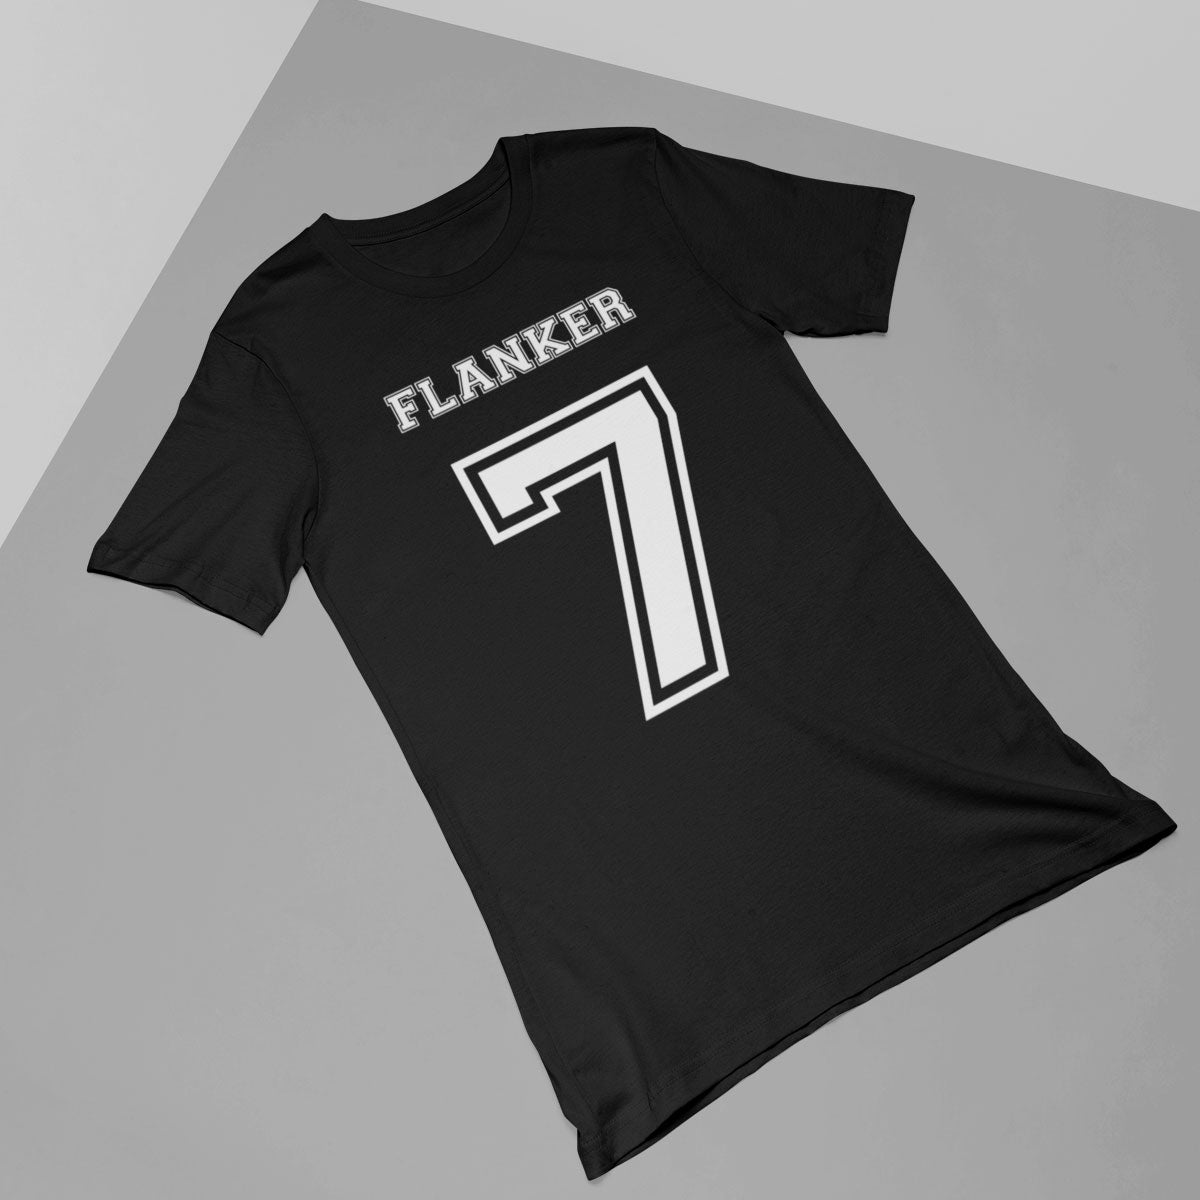 Flanker Number 7 Rugby Tee - First XV rugbystuff.com